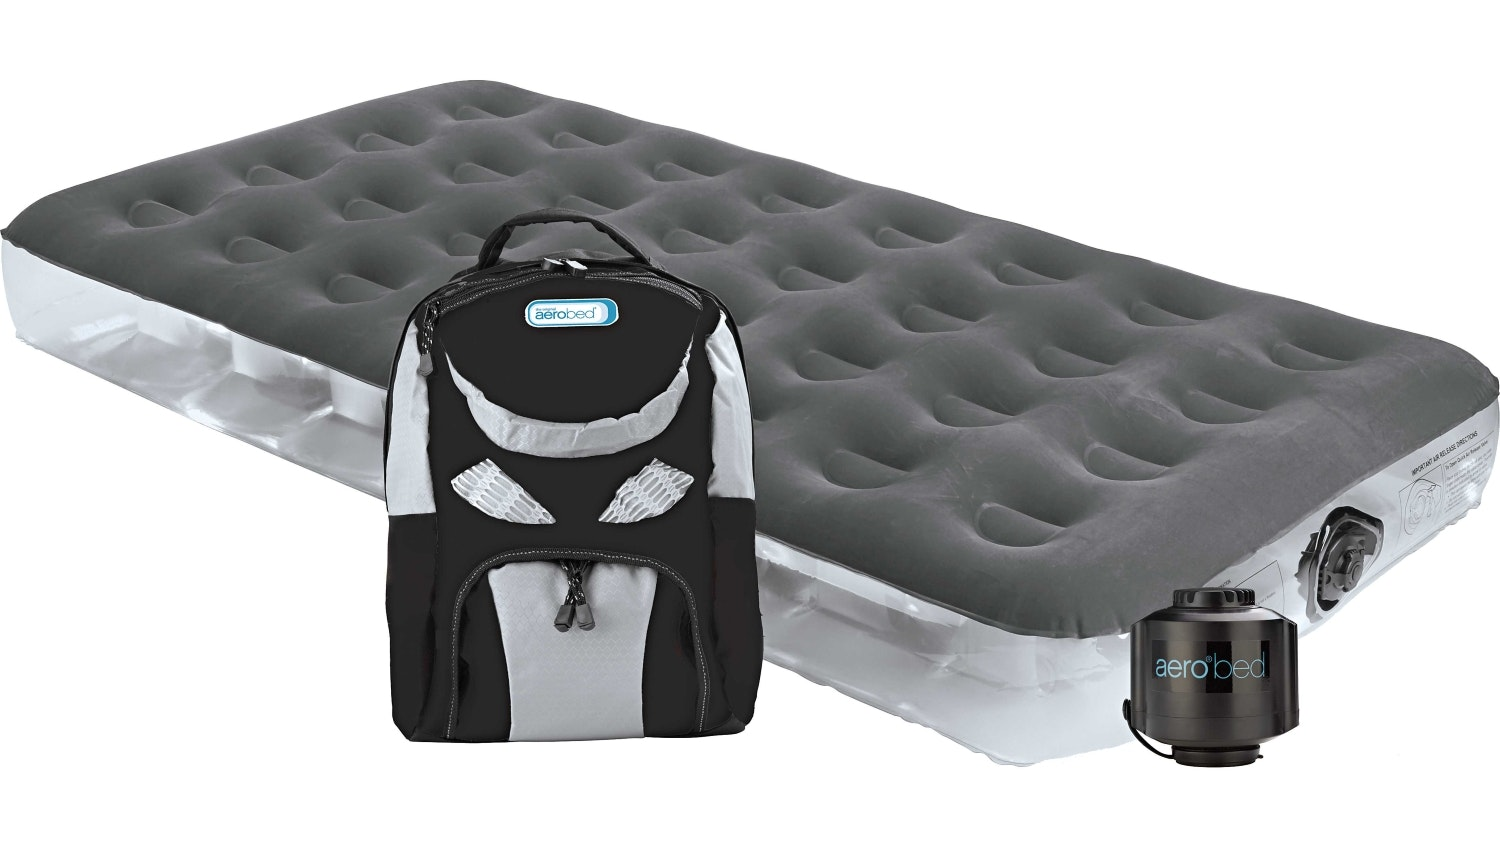 Aerobed Single Outdoor Mattress & Backpack